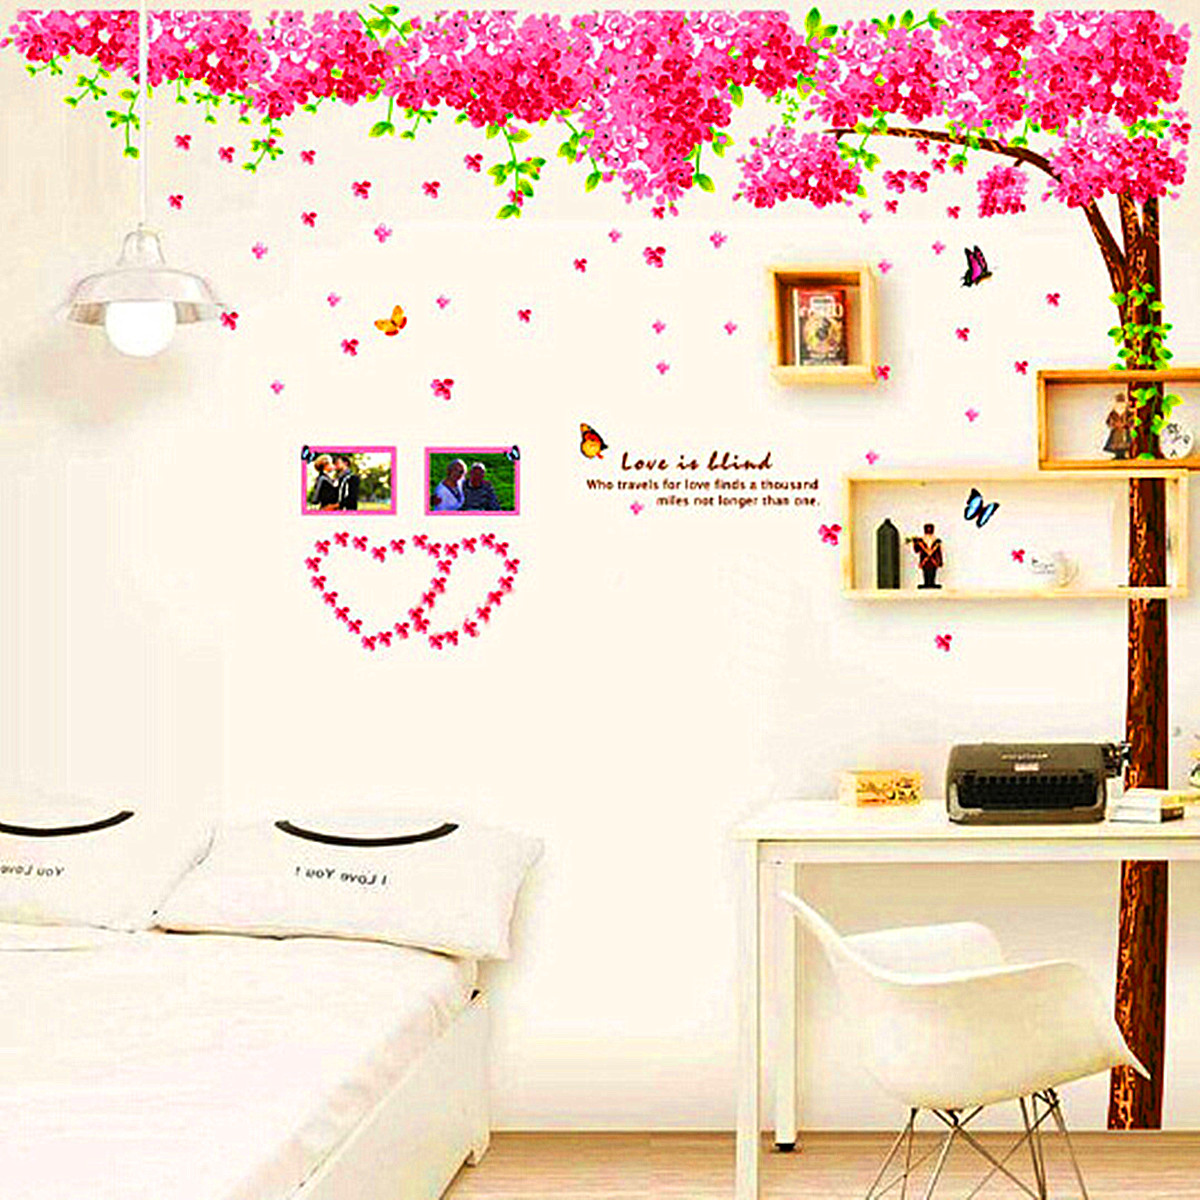 wandtattoo wandsticker wandaufkleber blumen spruch schlafzimmer wohnzimmer dekor ebay. Black Bedroom Furniture Sets. Home Design Ideas